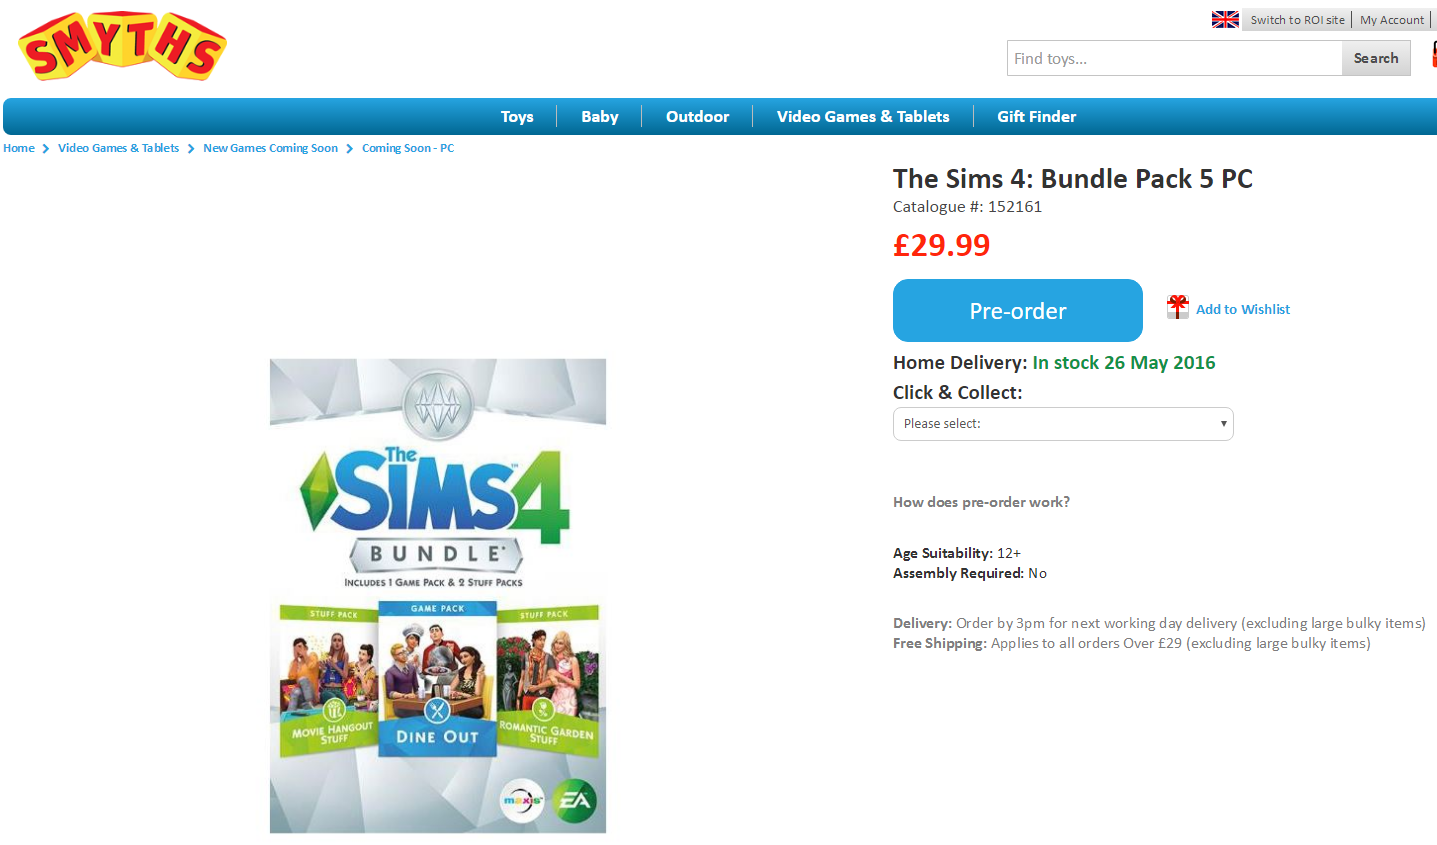 Sims 4 Dine Out Game Pack